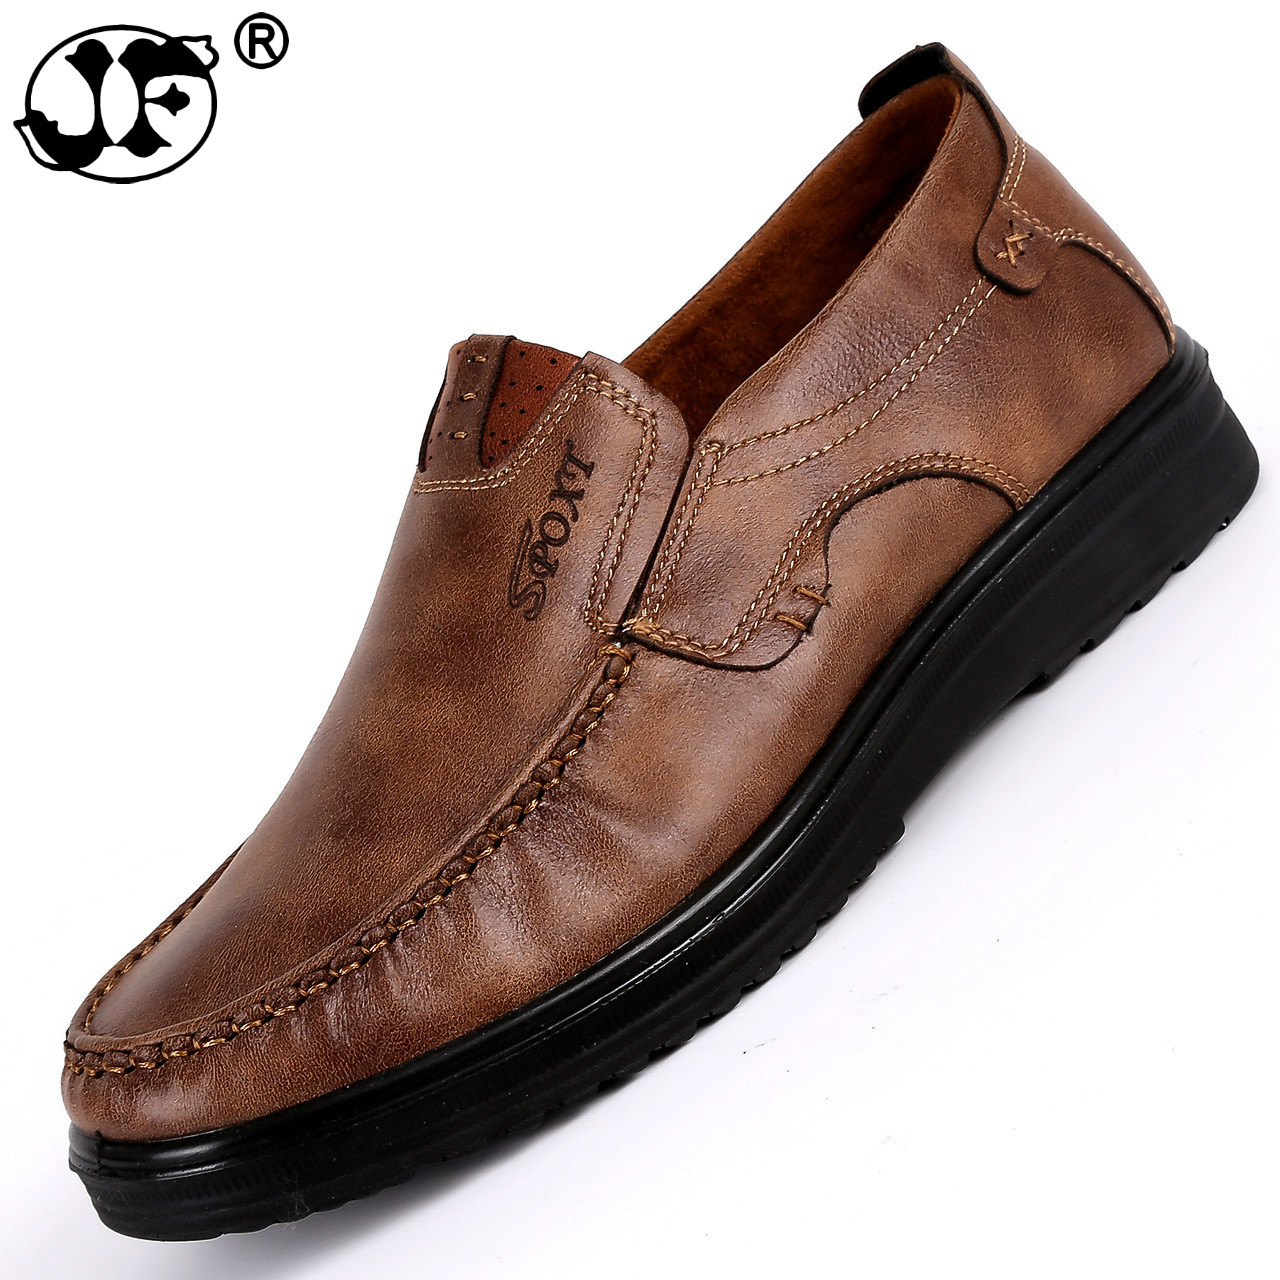 Genuine Leather Shoes Men Brand Footwear Non-slip Thick Sole Fashion Men's Casual Shoes Male High Quality Cowhide Loafers458